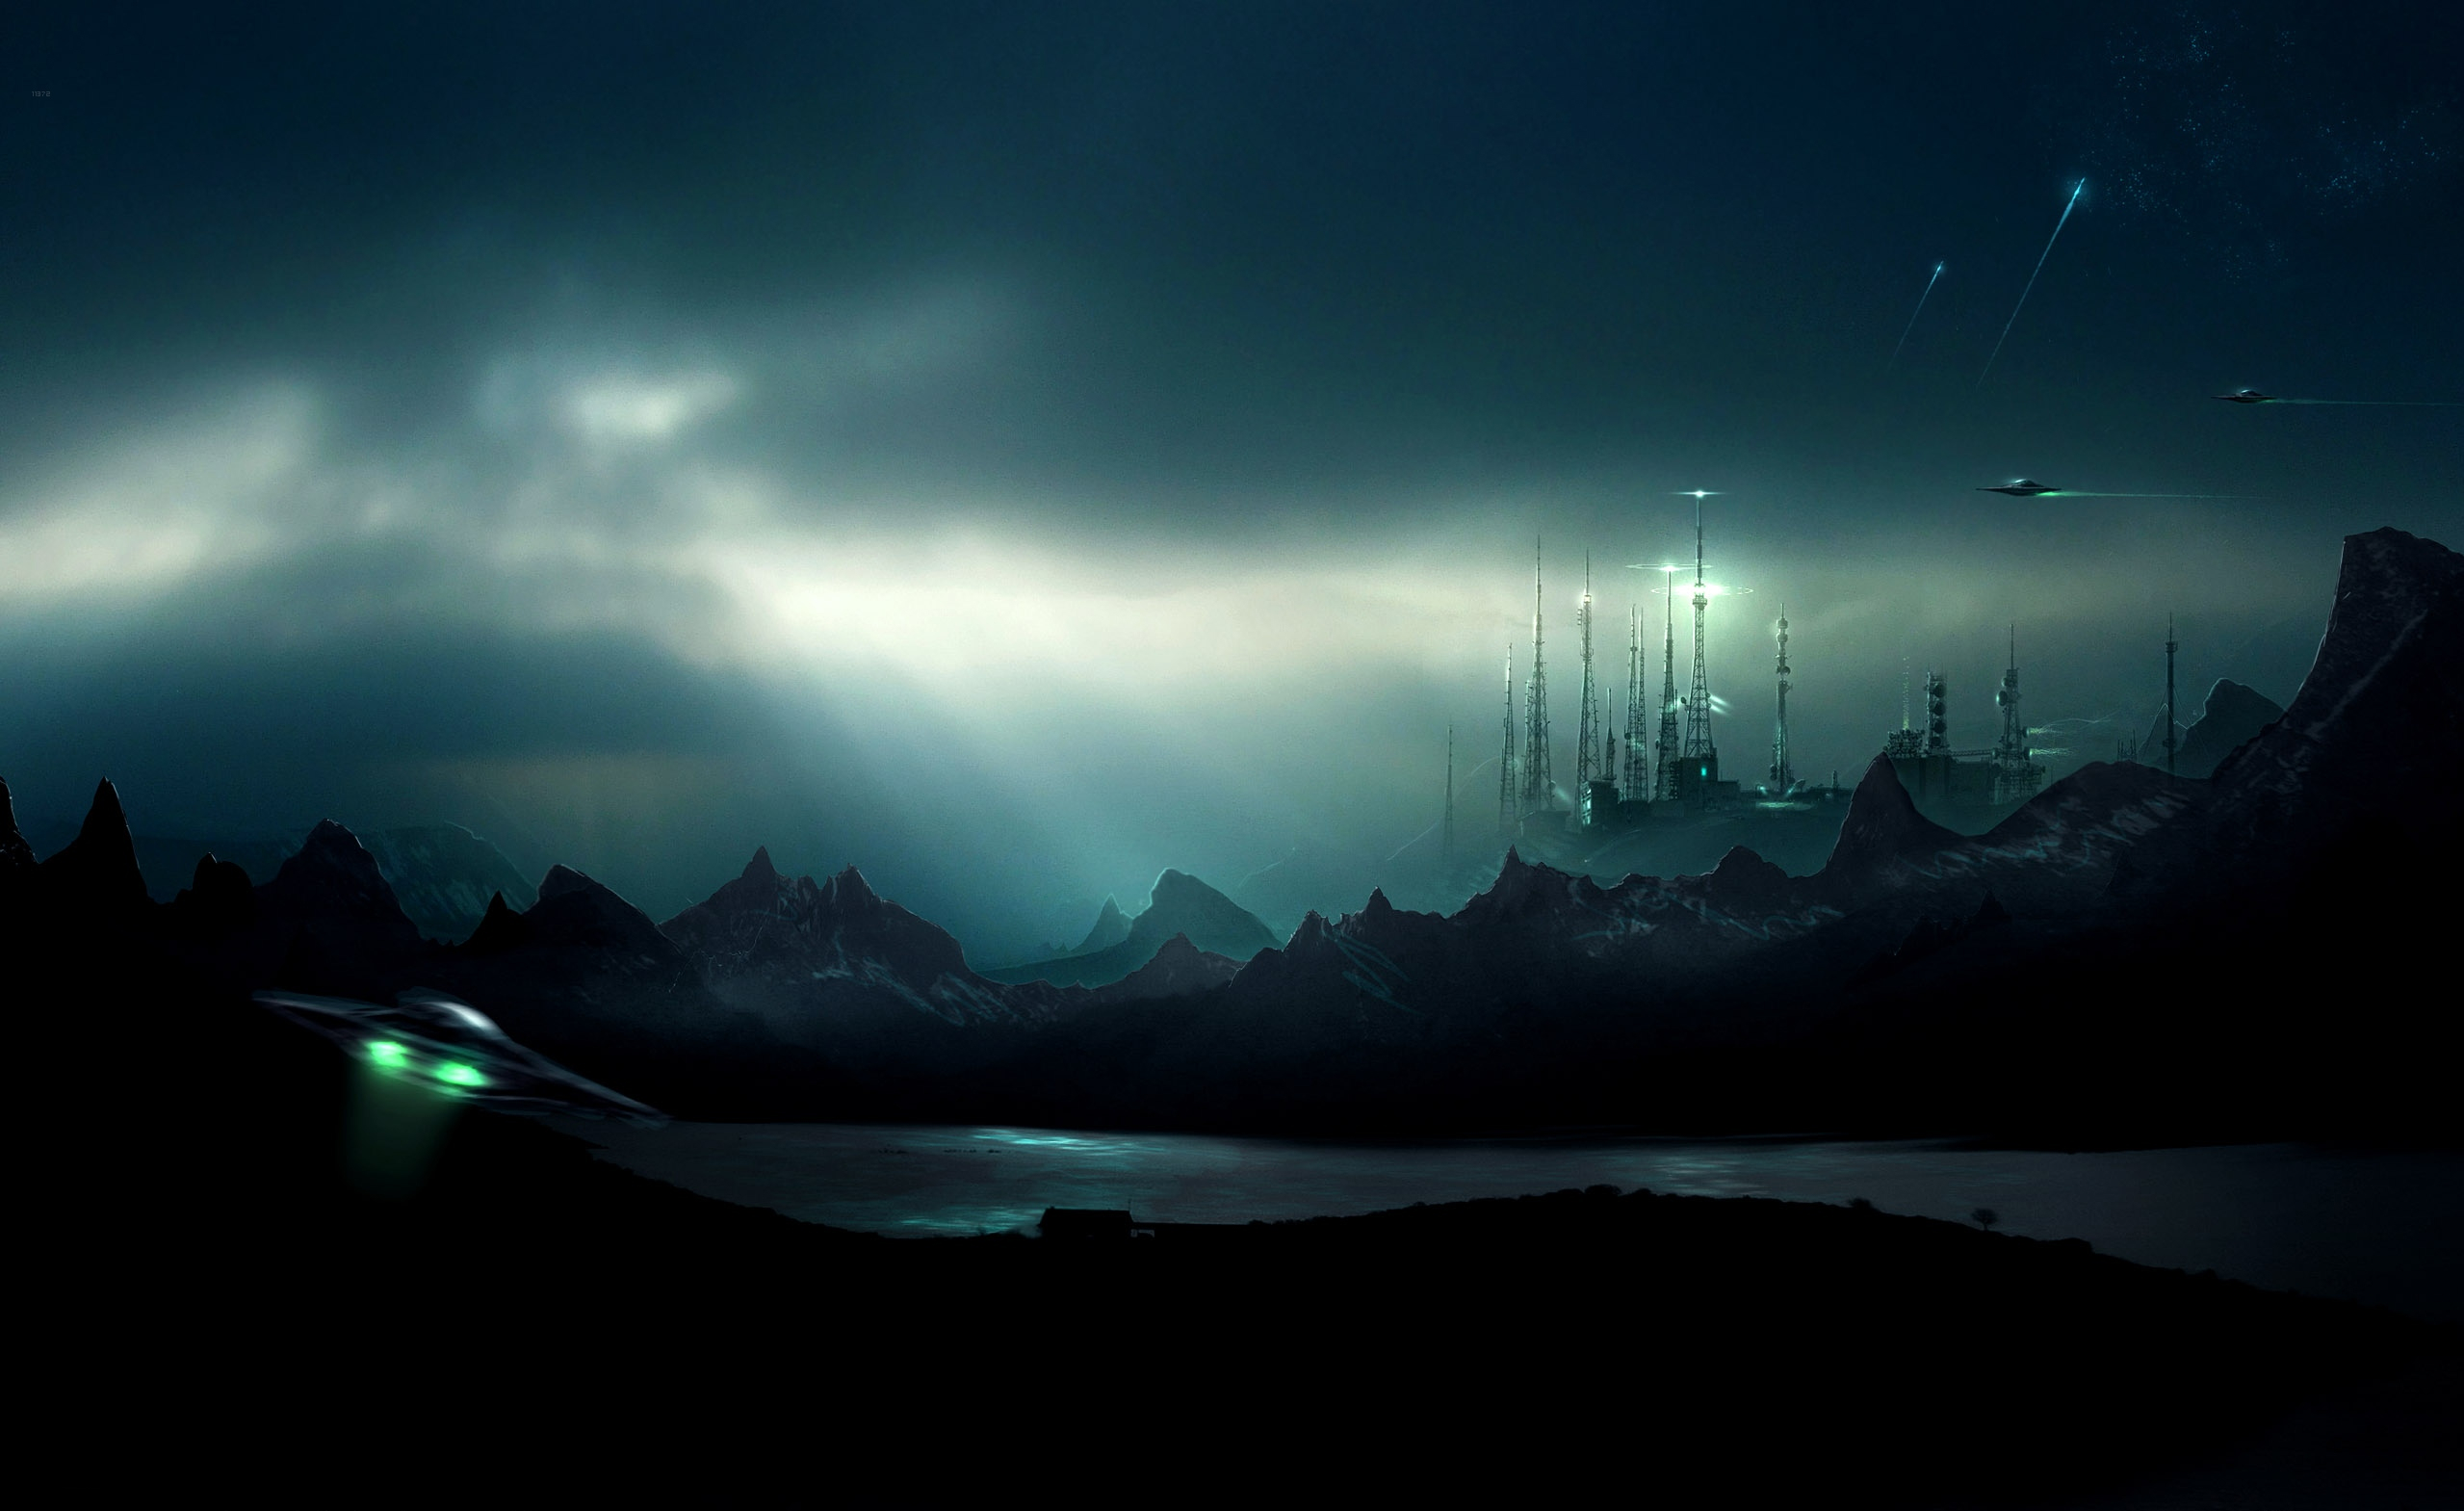 Background Images Wallpaper Abyss: 34 Futuristic HD Wallpapers